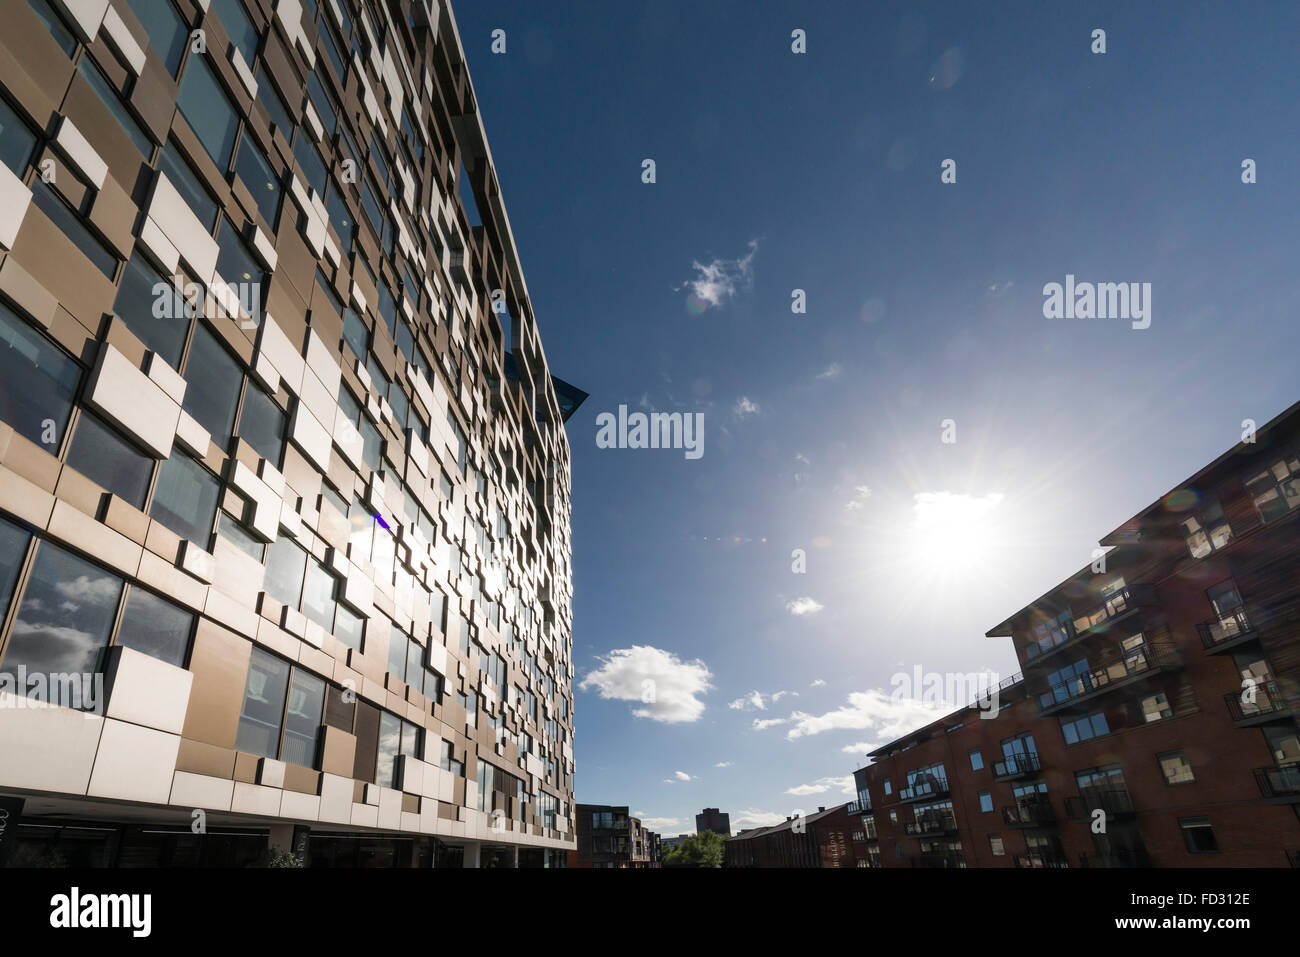 Le bâtiment Cube, Birmingham, Angleterre Photo Stock